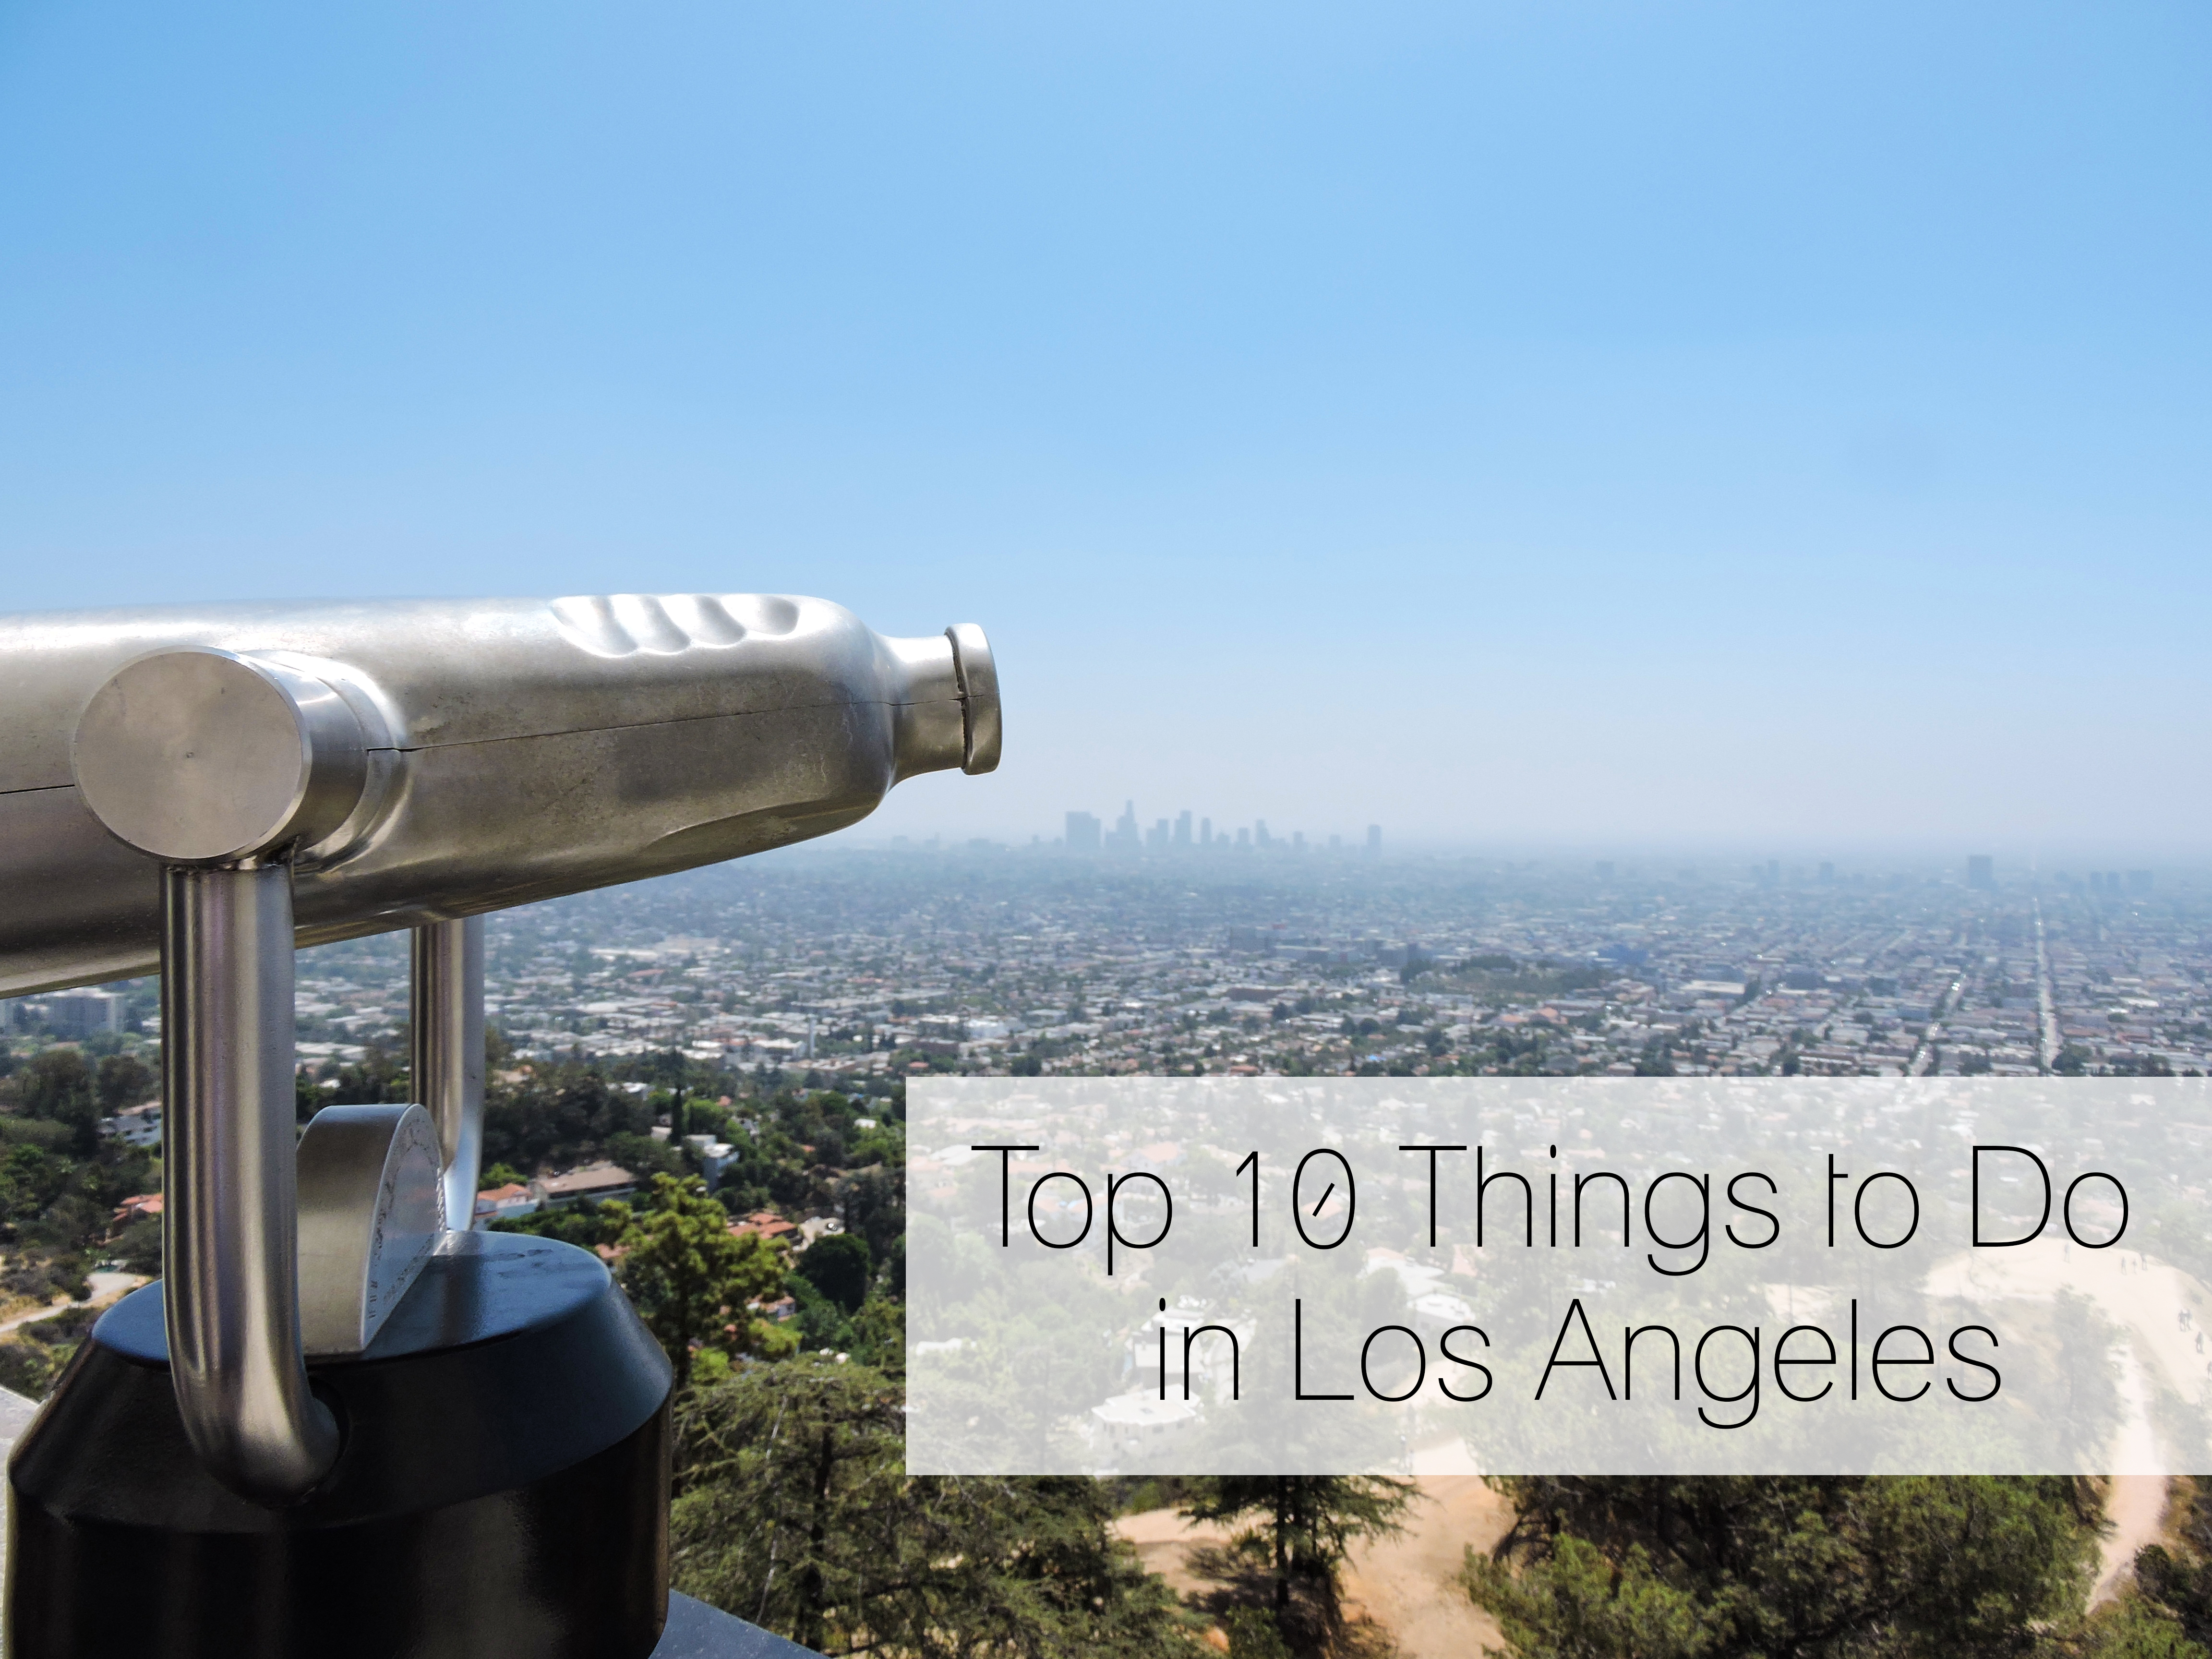 Top Things To Do Los Angeles California - 10 things to see and do in california